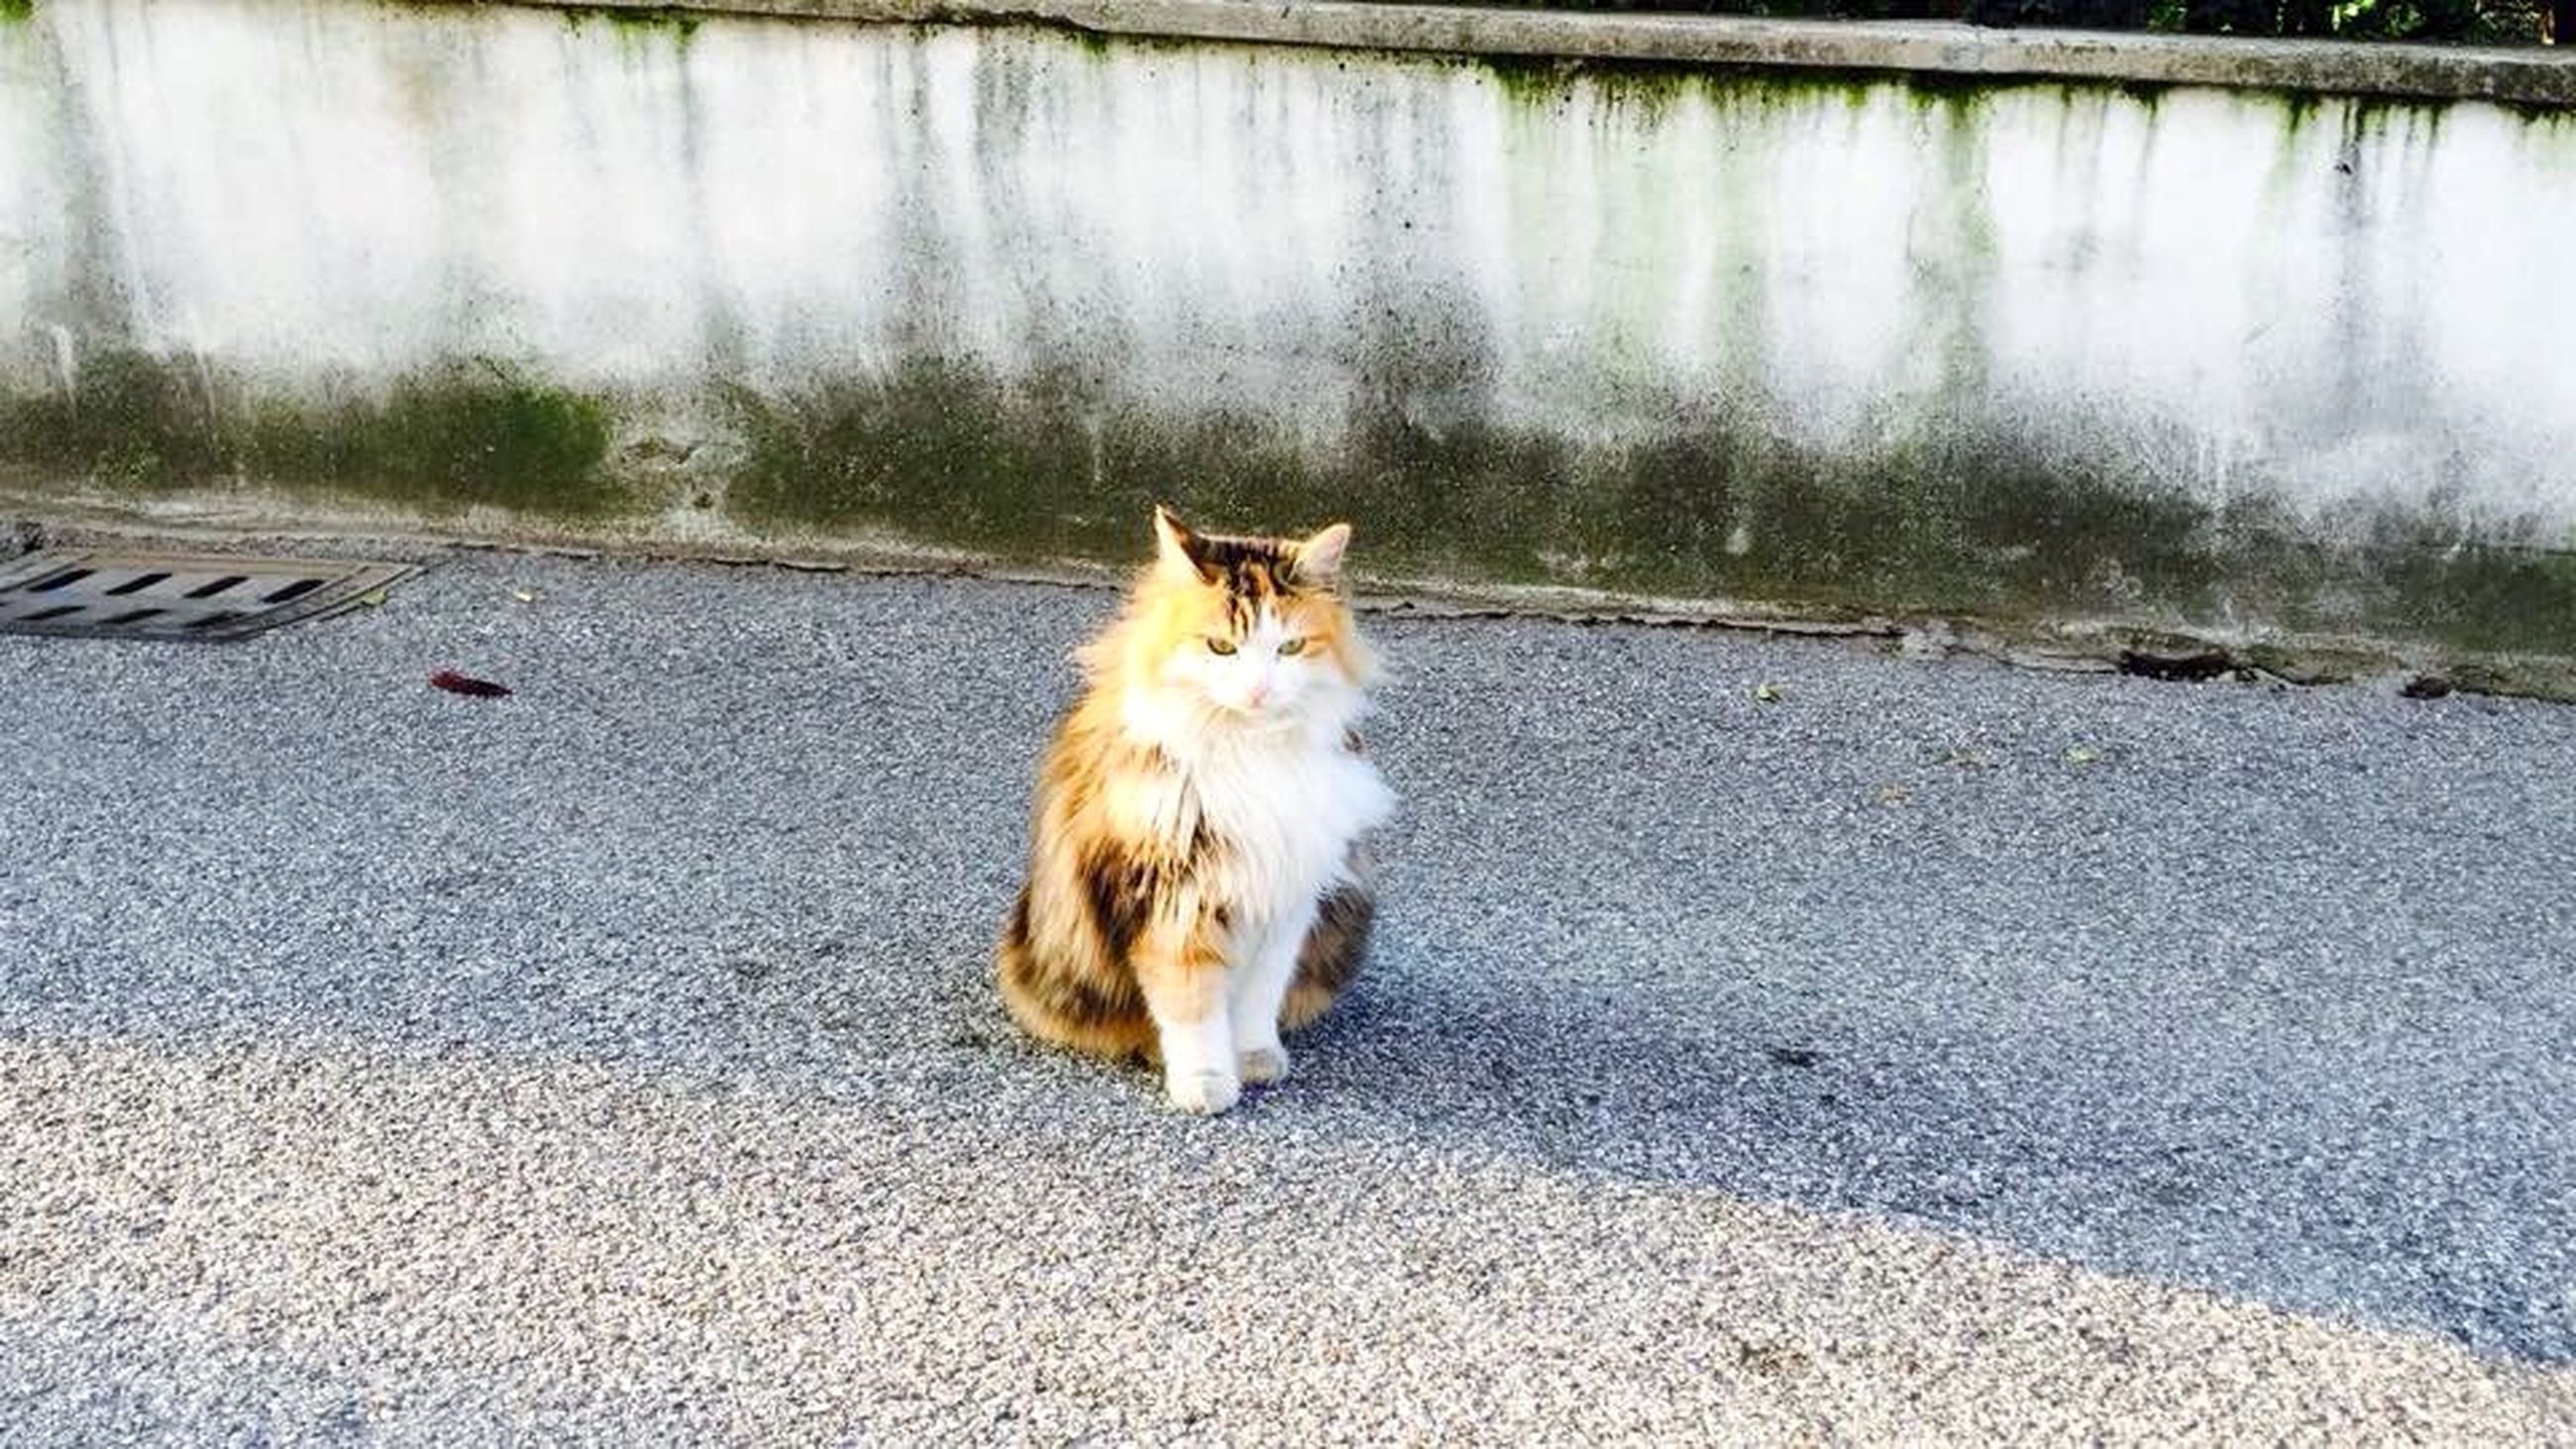 pets, animal themes, domestic animals, one animal, mammal, domestic cat, cat, feline, portrait, looking at camera, street, whisker, sitting, outdoors, day, zoology, dog, relaxation, no people, road